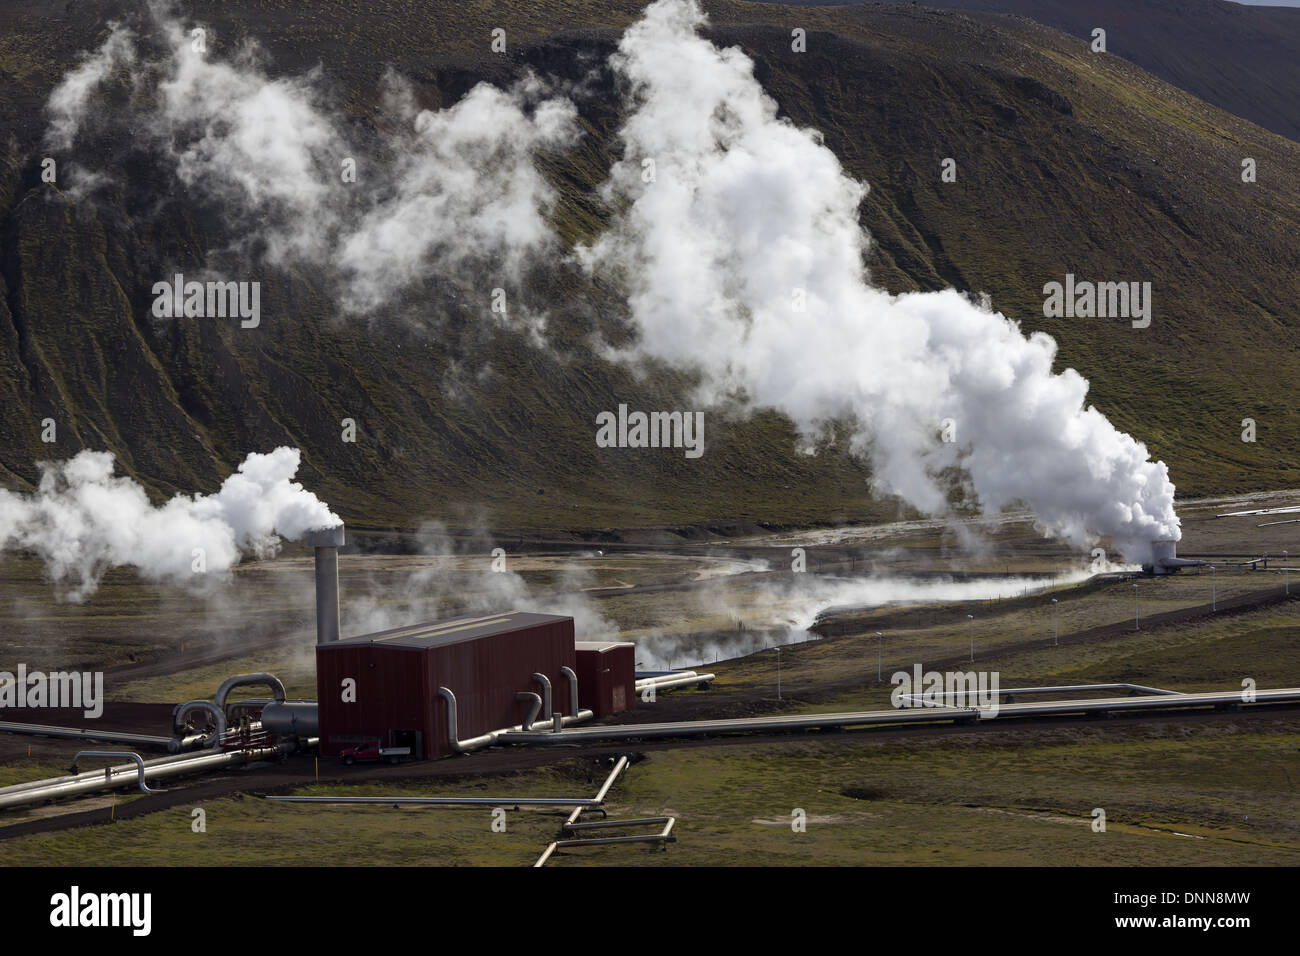 The Krafla Power Station is a 60 MW geothermal power station located near the Krafla Volcano in Iceland. - Stock Image